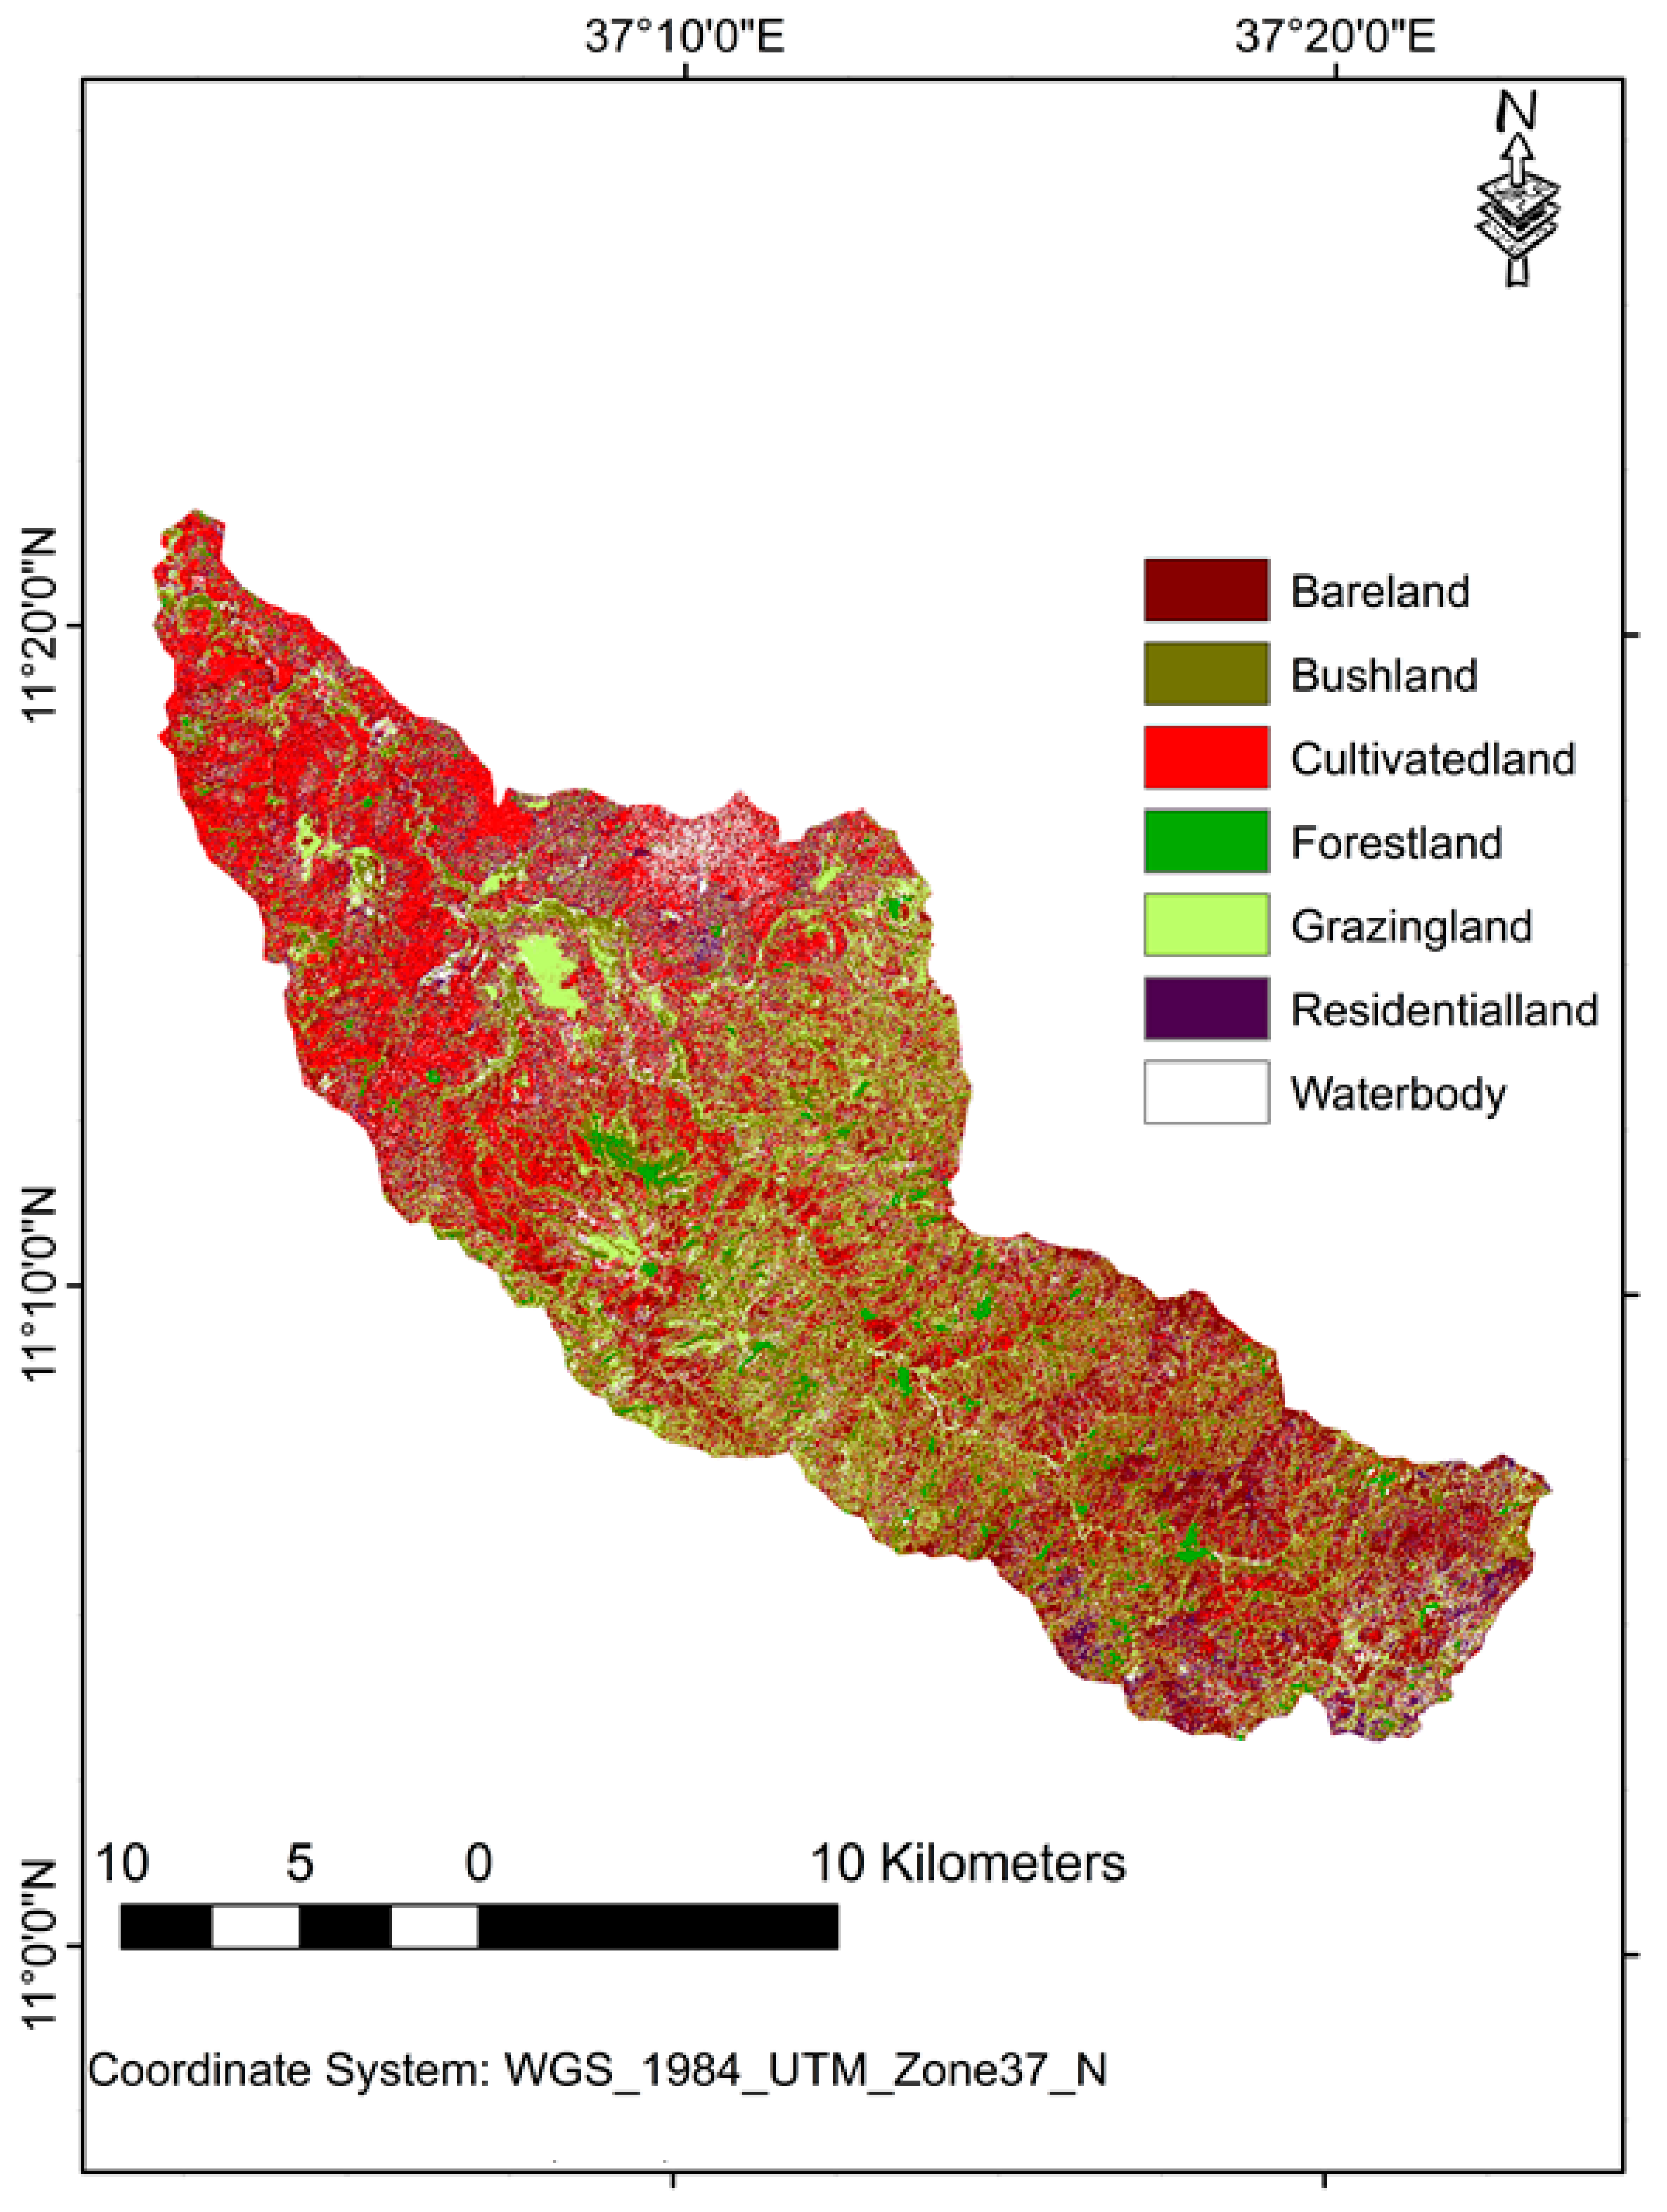 Land Free Full Text Land Use Evaluation Over The Jema Watershed In The Upper Blue Nile River Basin Northwestern Highlands Of Ethiopia Html